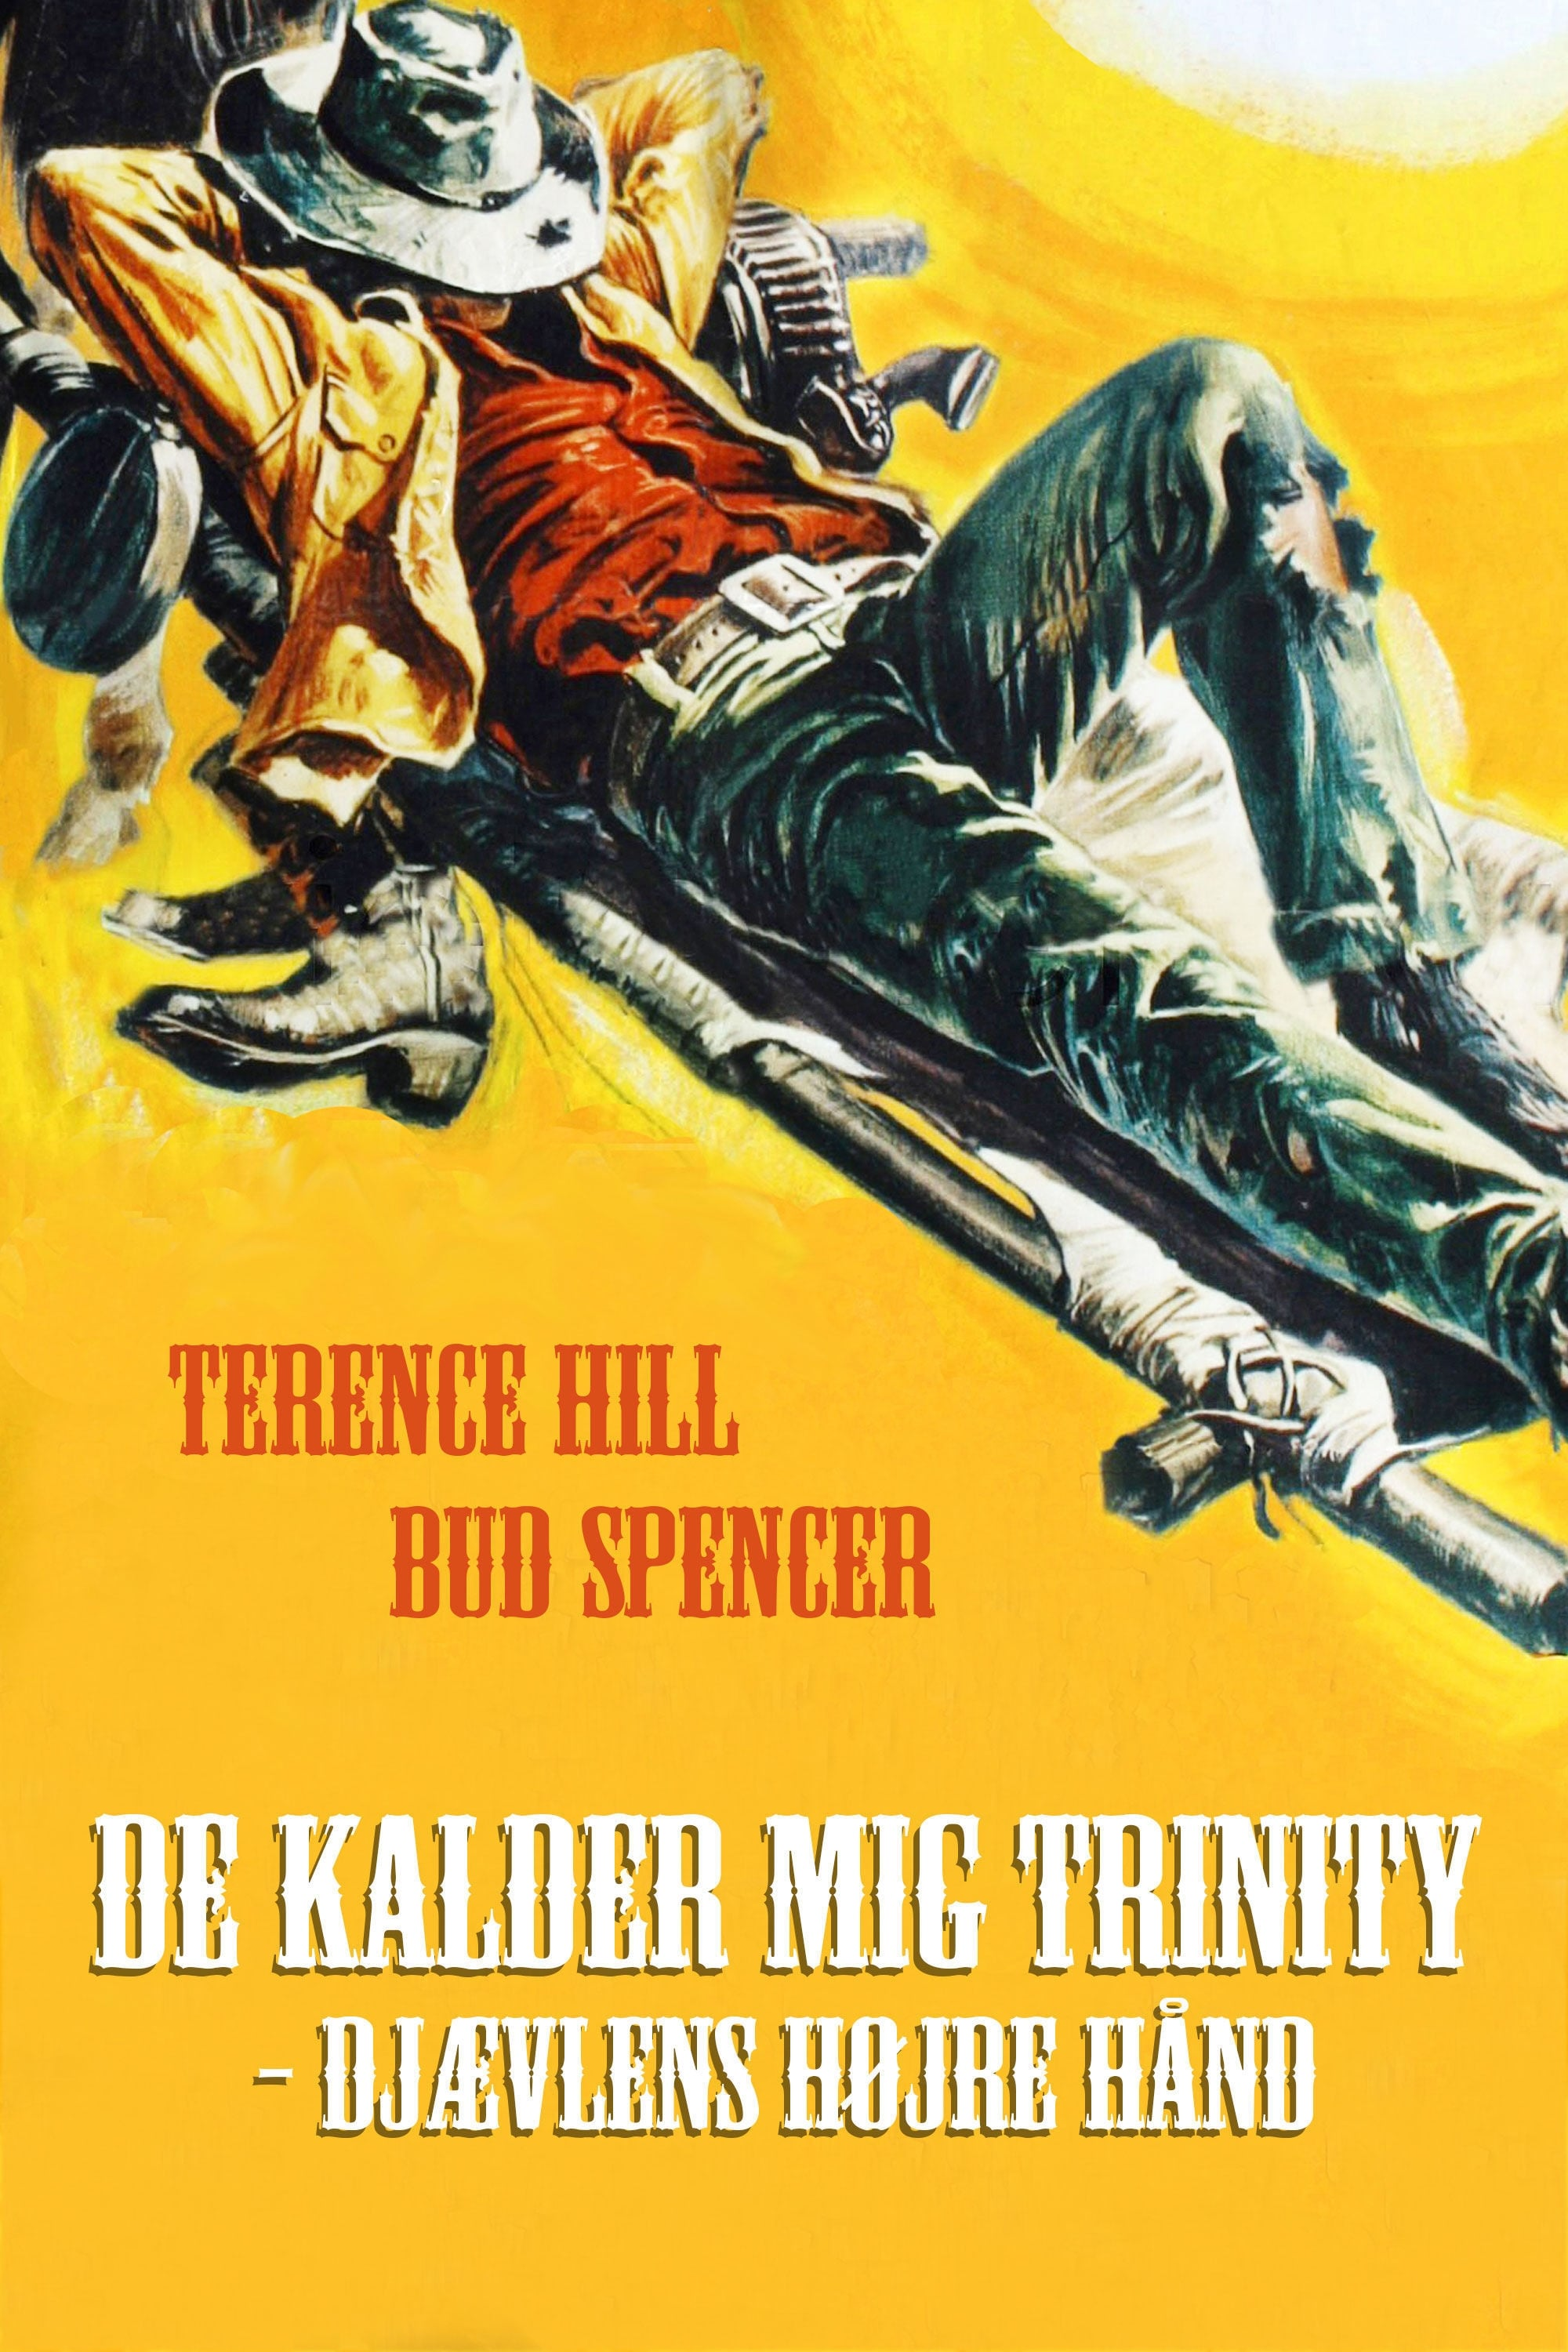 they call me trinity 1970 � moviesfilmcinecom